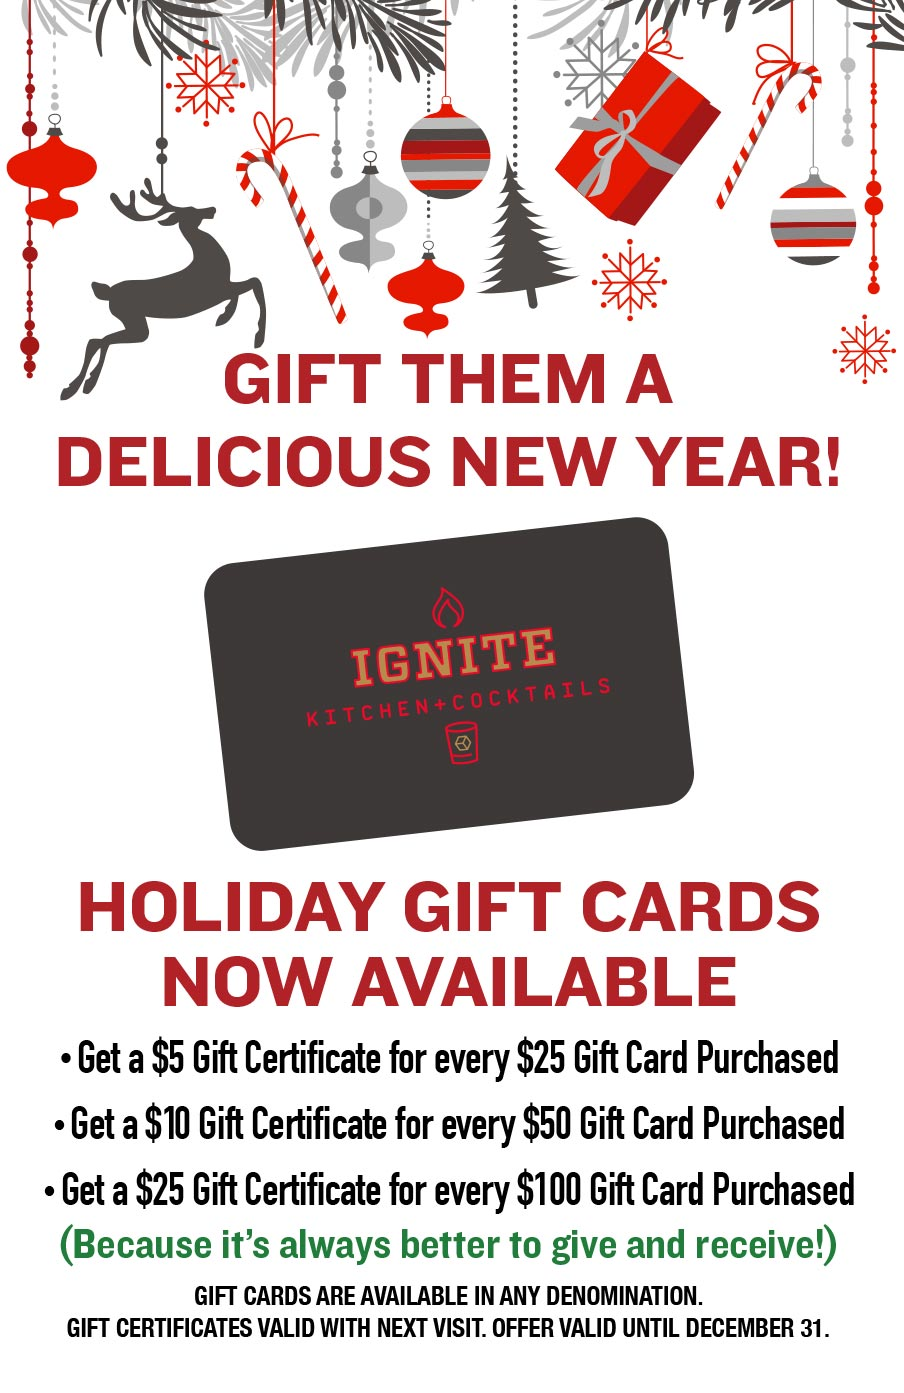 Holiday Gift Cards Available at Ignite